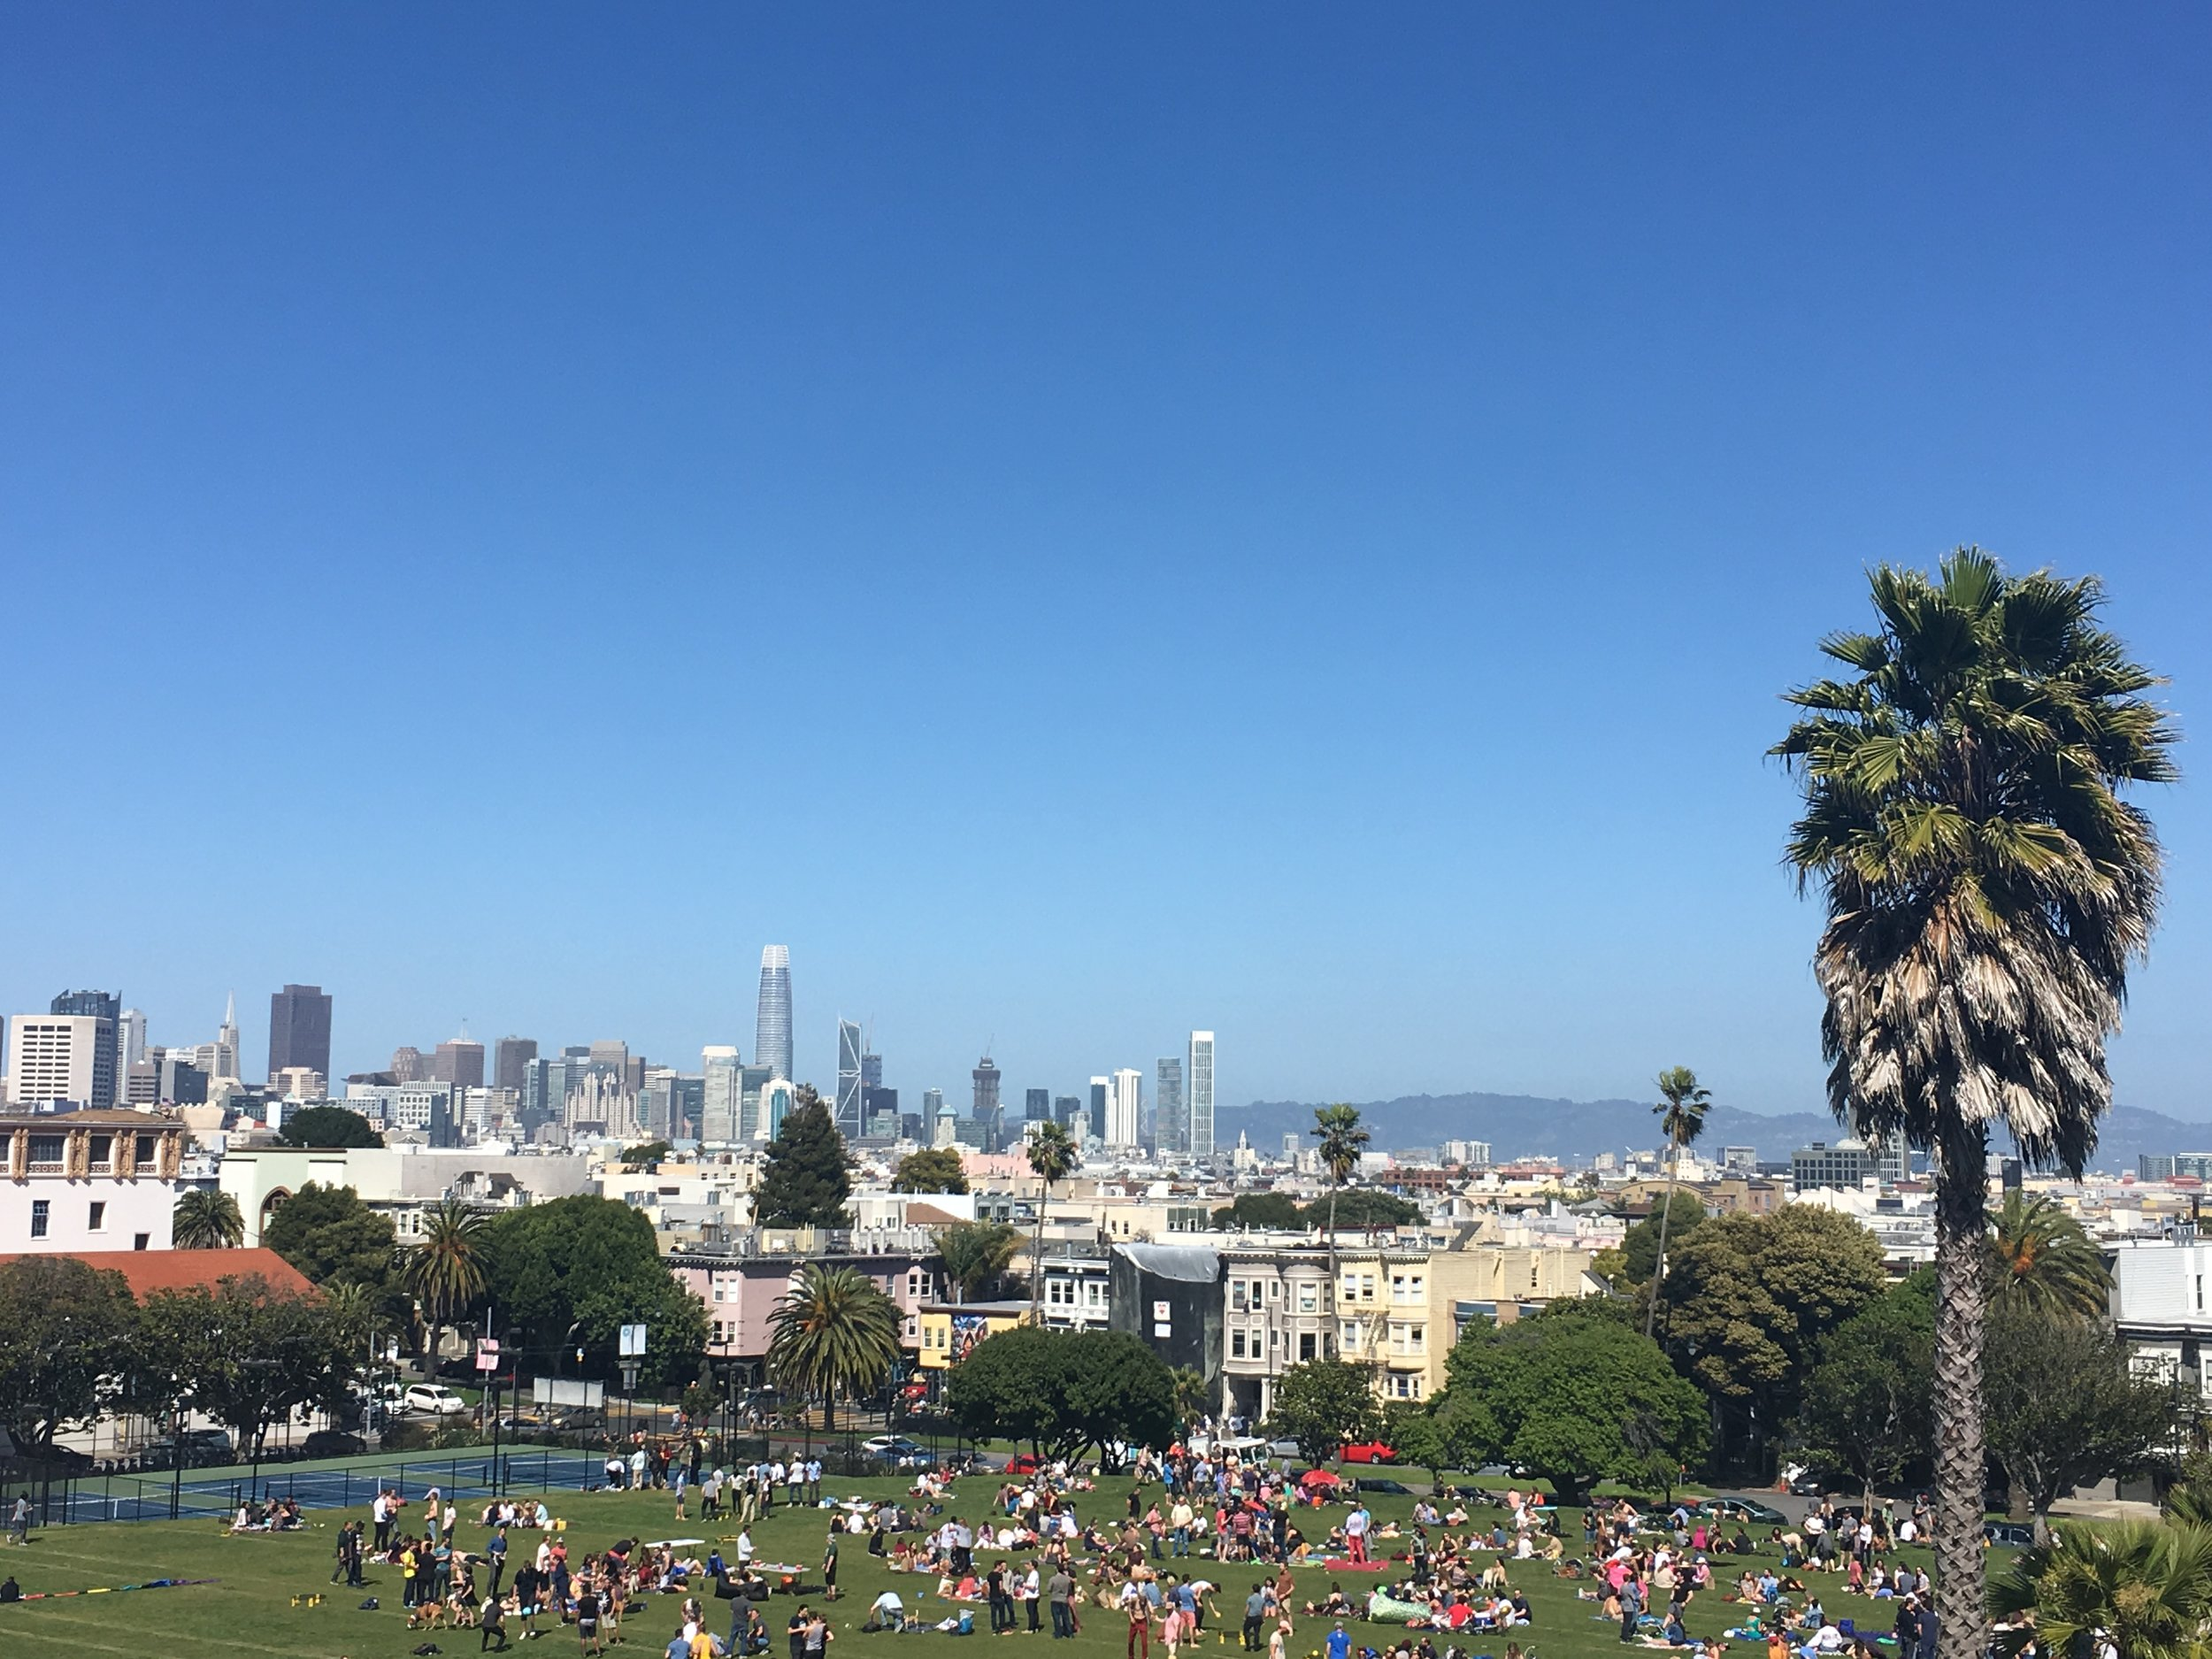 Dolores Park in San Francisco, CA